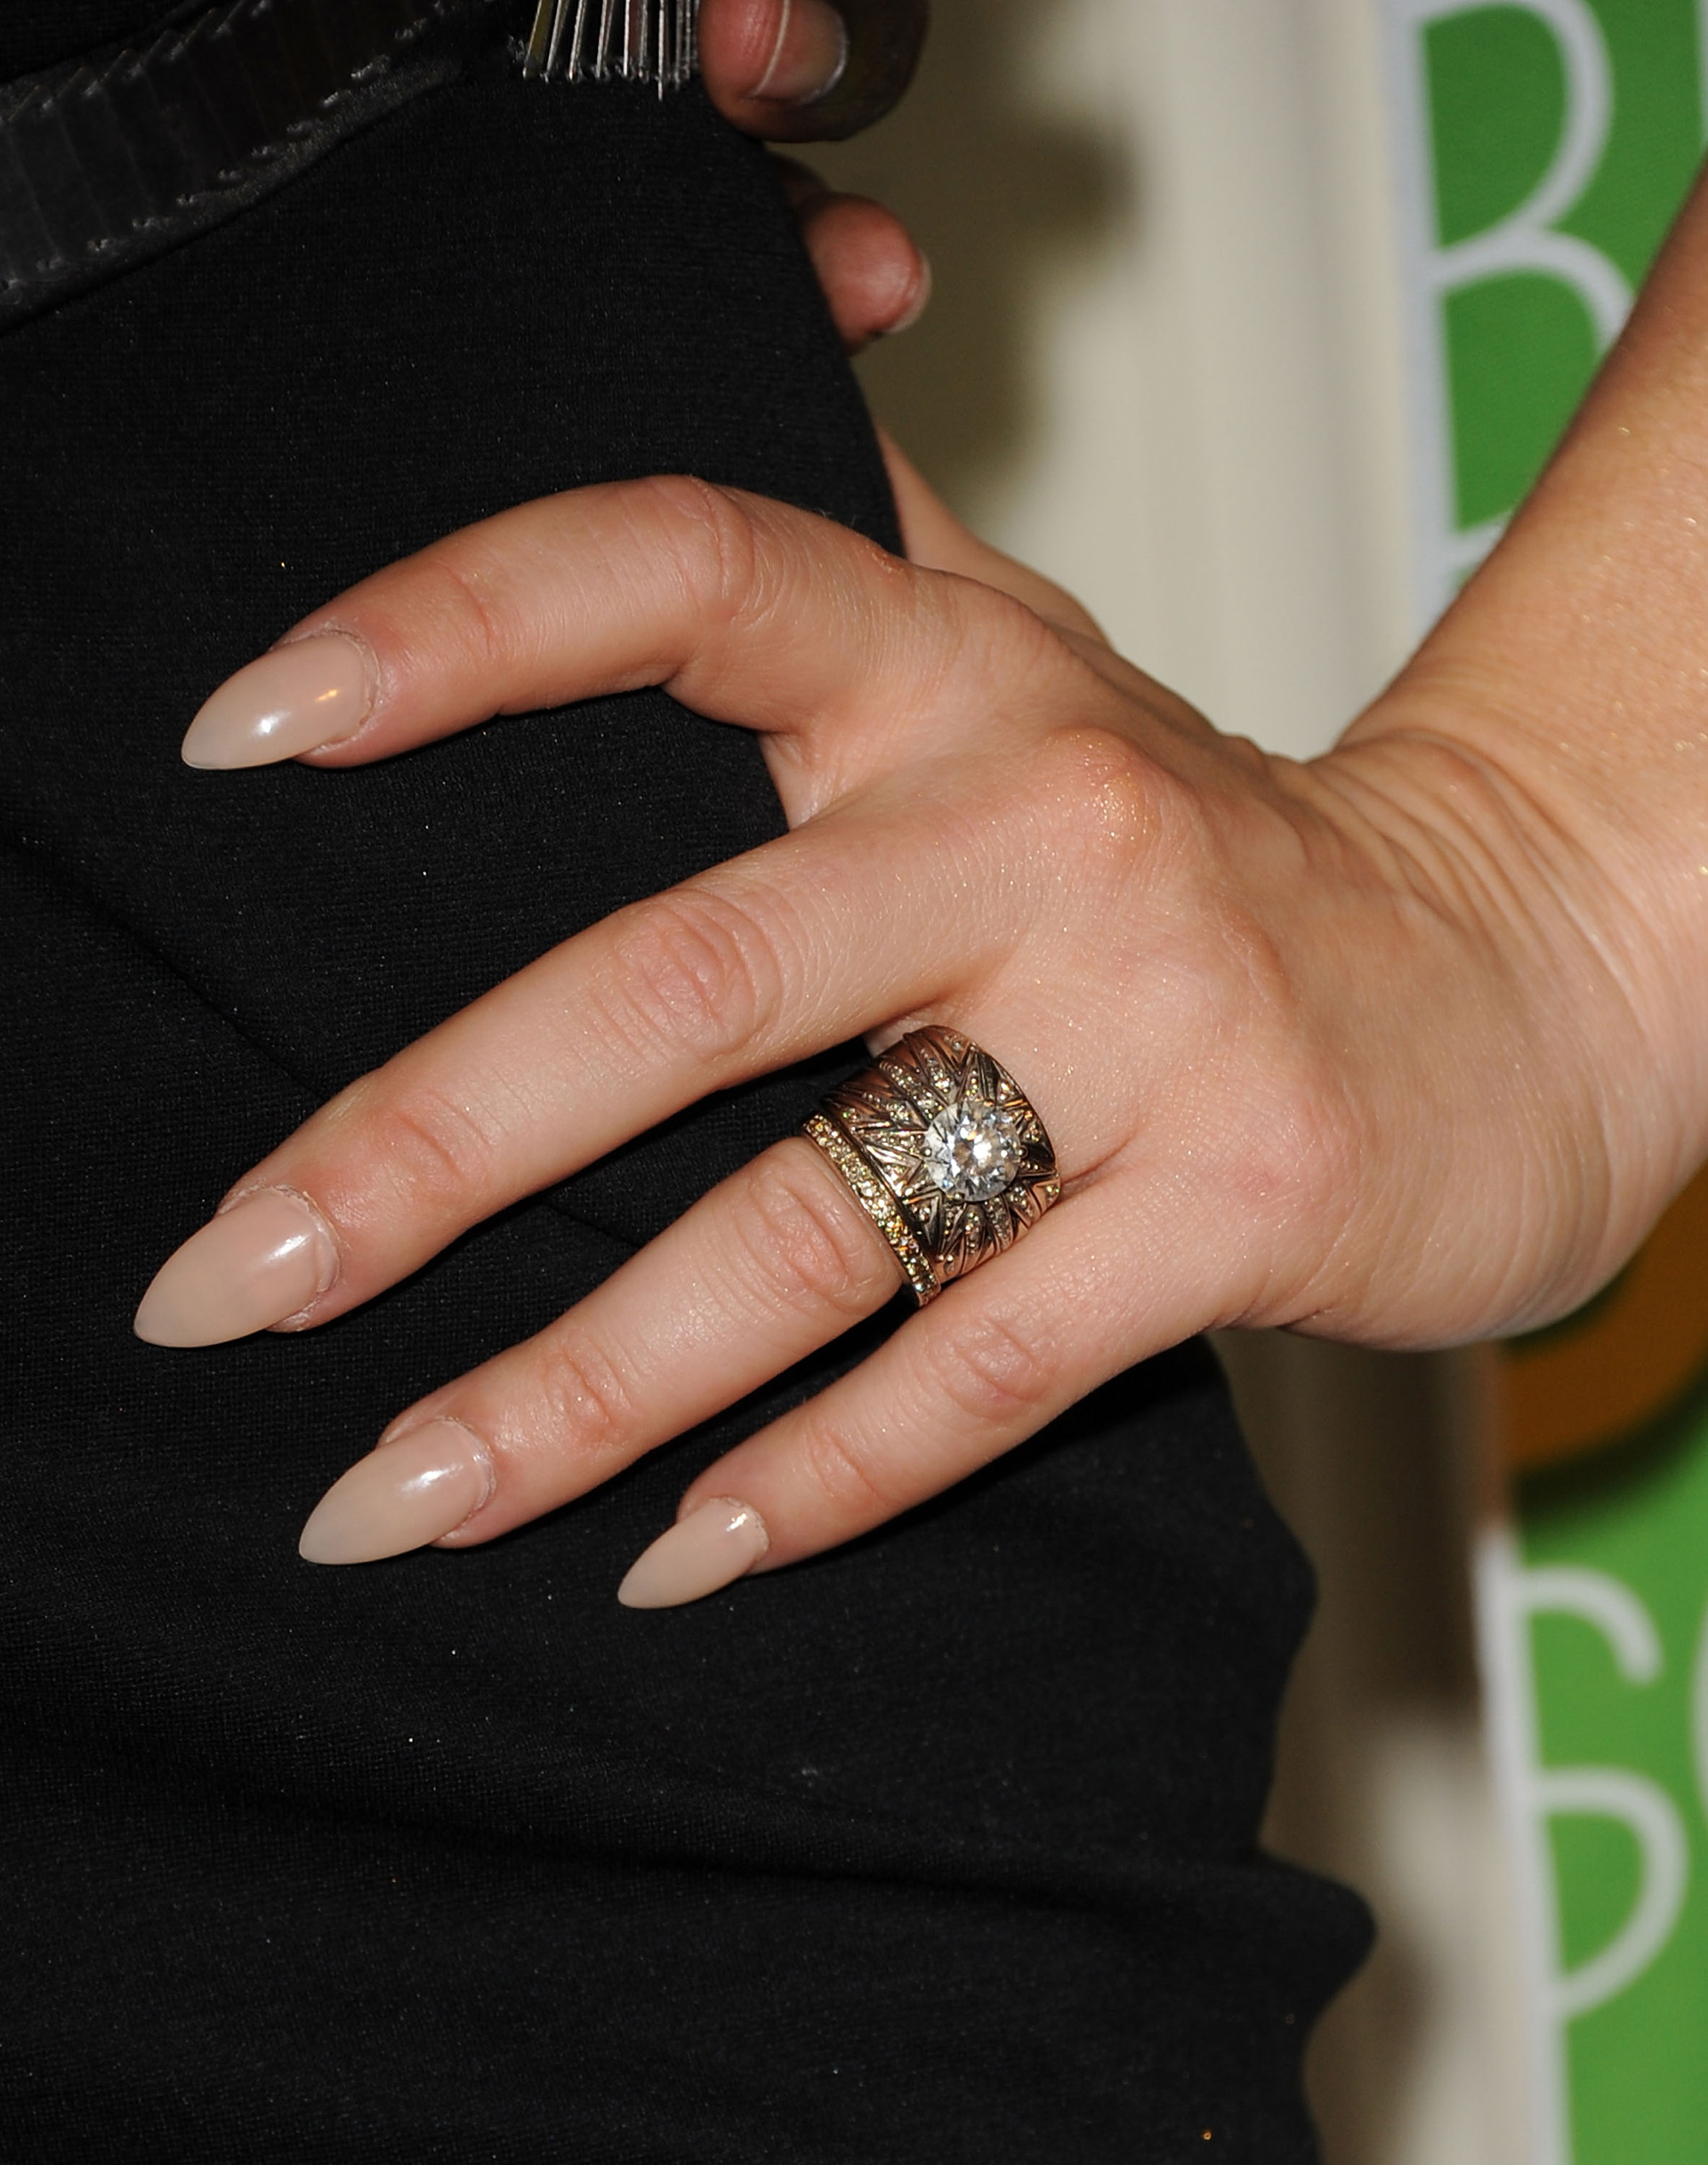 Diy Stiletto Nails Without Acrylic Deiting Weight Loss